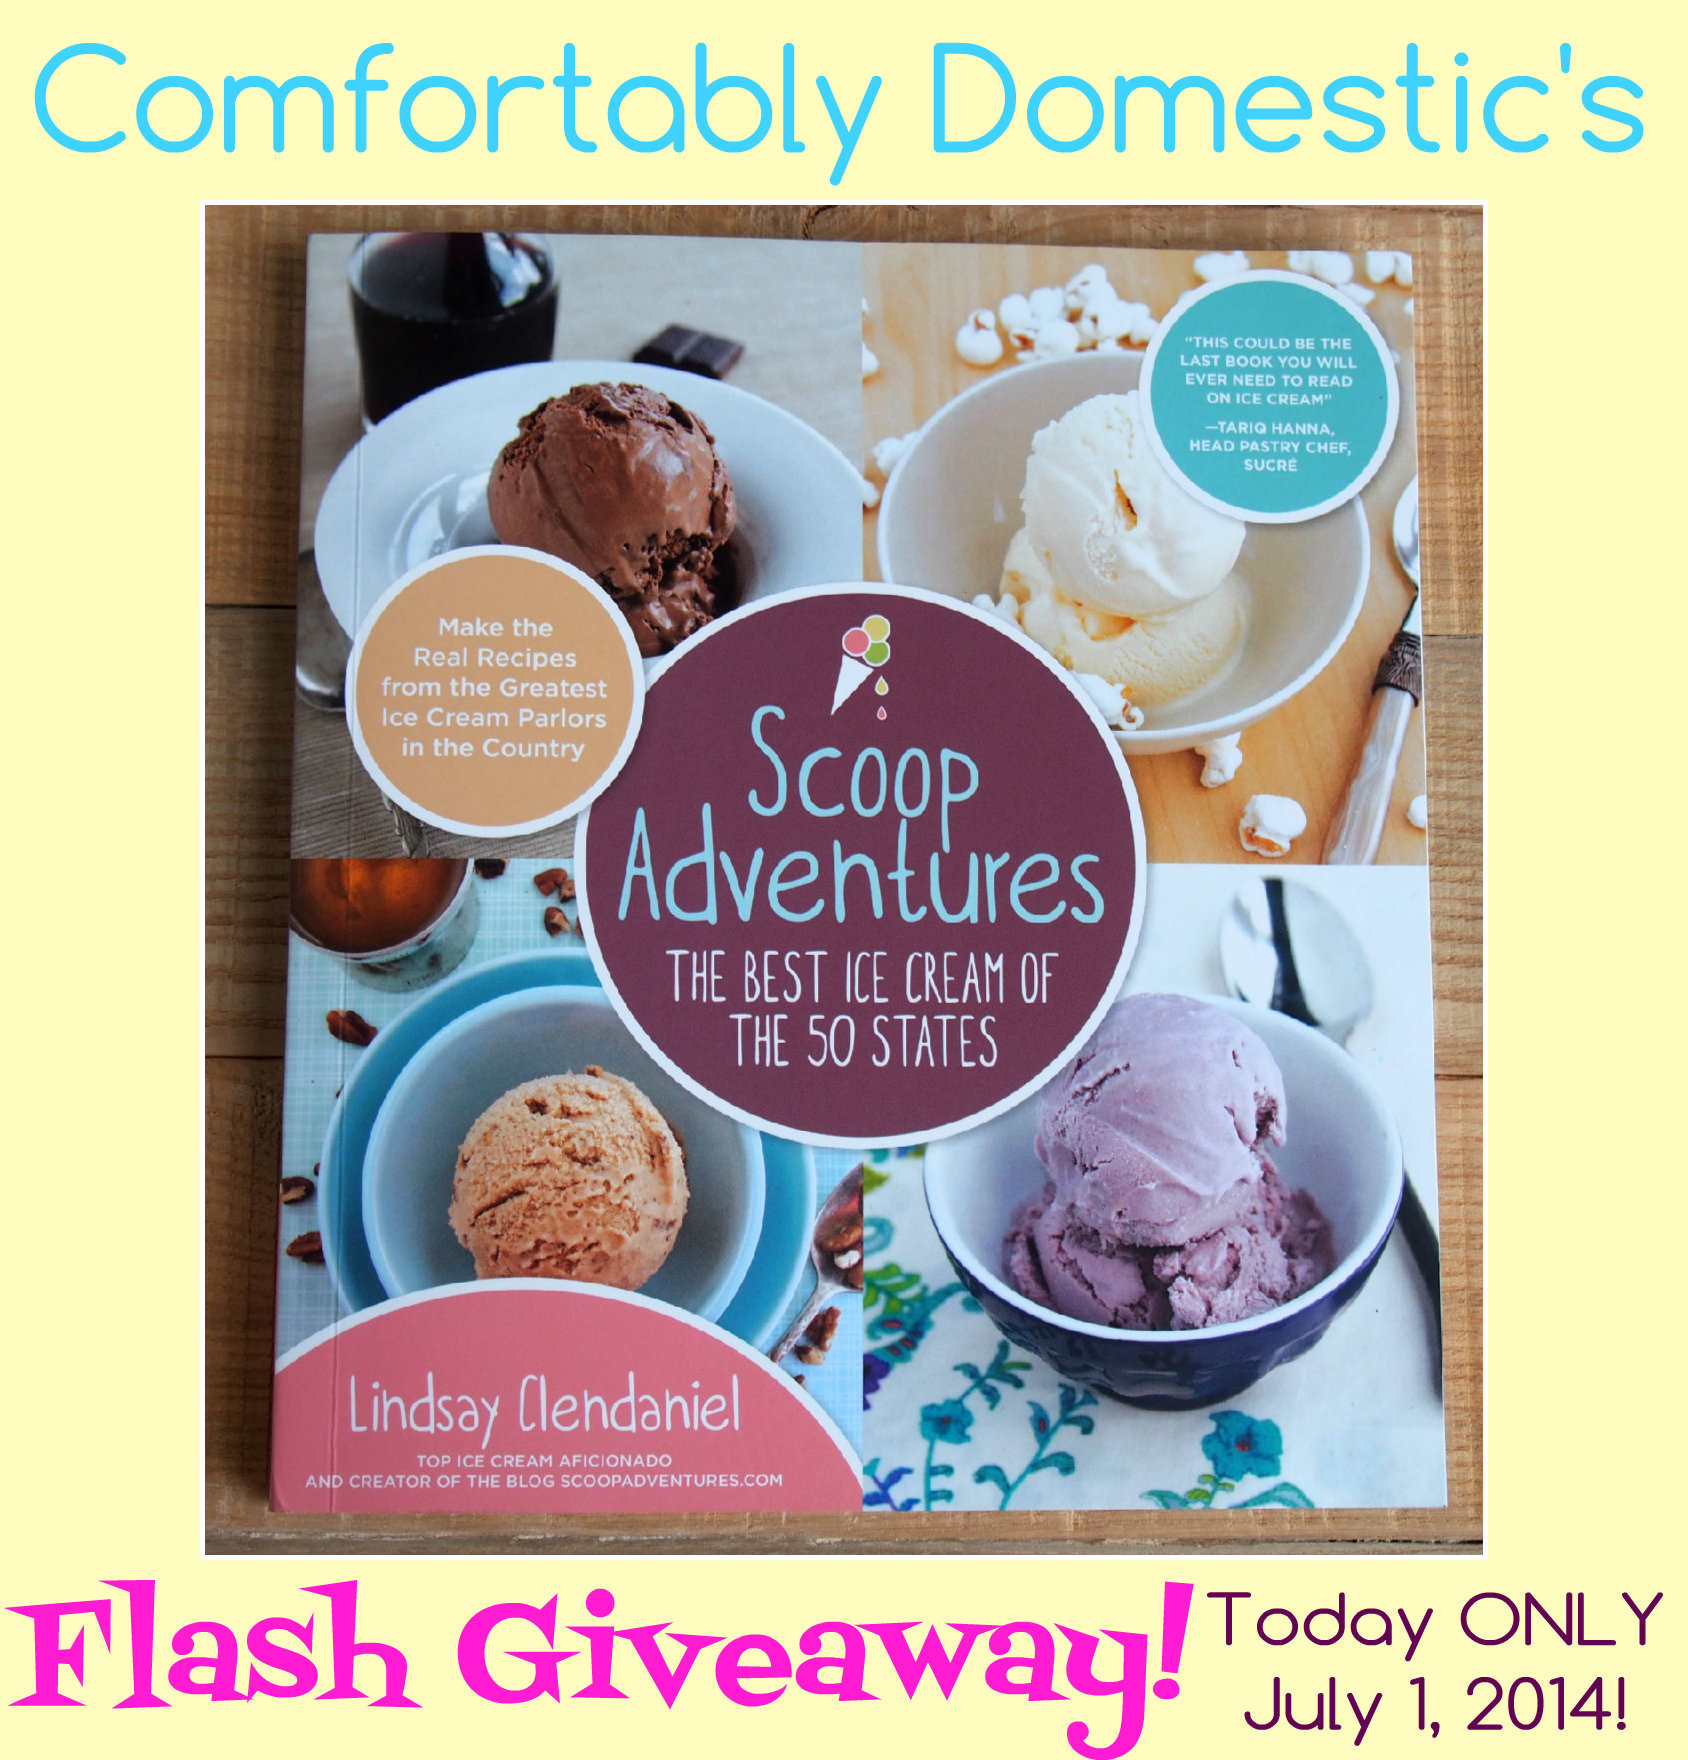 Comfortably Domestic's Scoop Adventures FLASH Giveaway! ONLY July 1, 2014